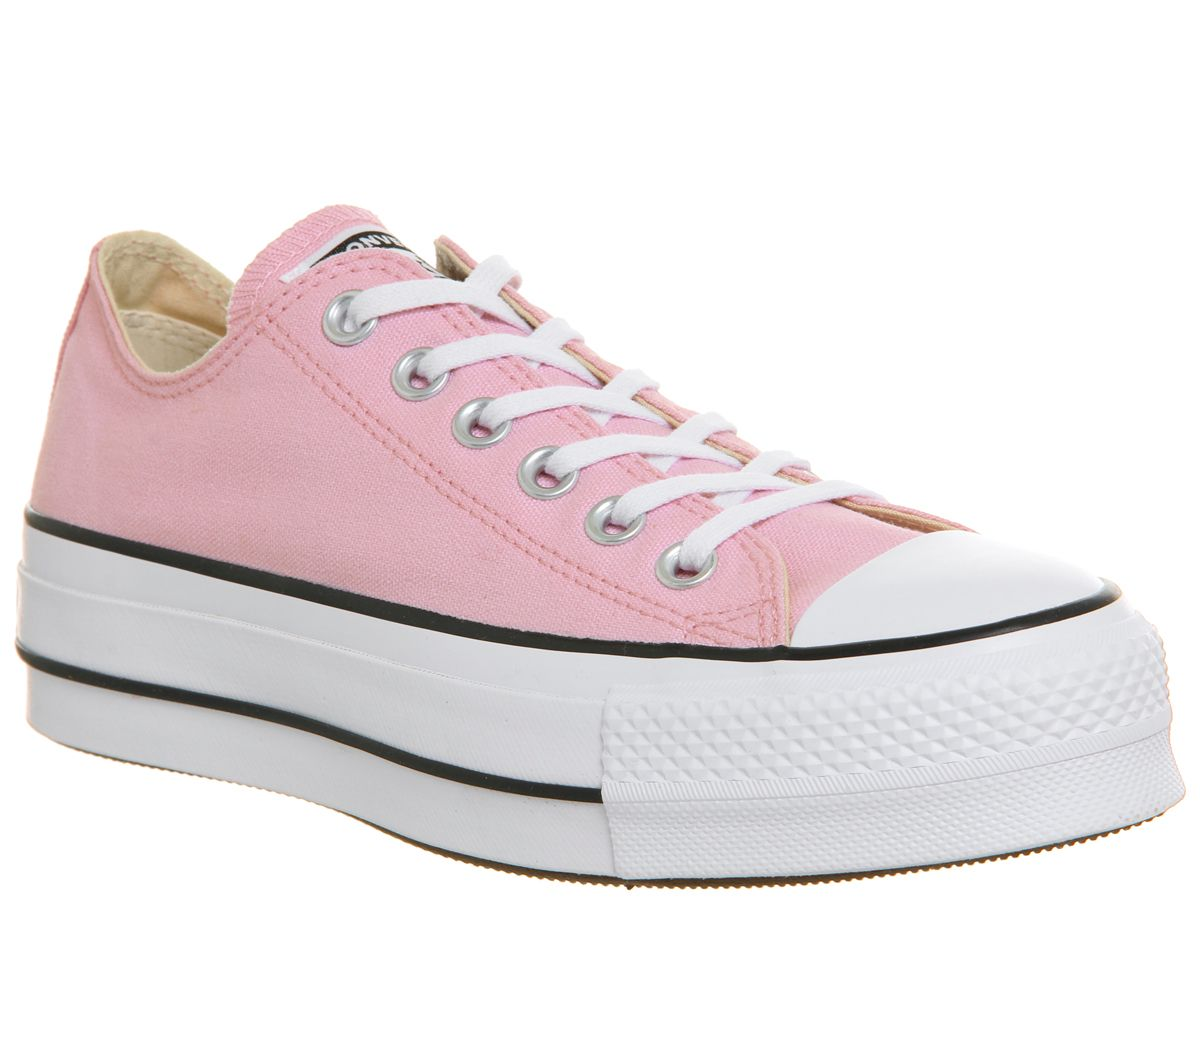 Converse Converse All Star Lift Low Trainers, Pink